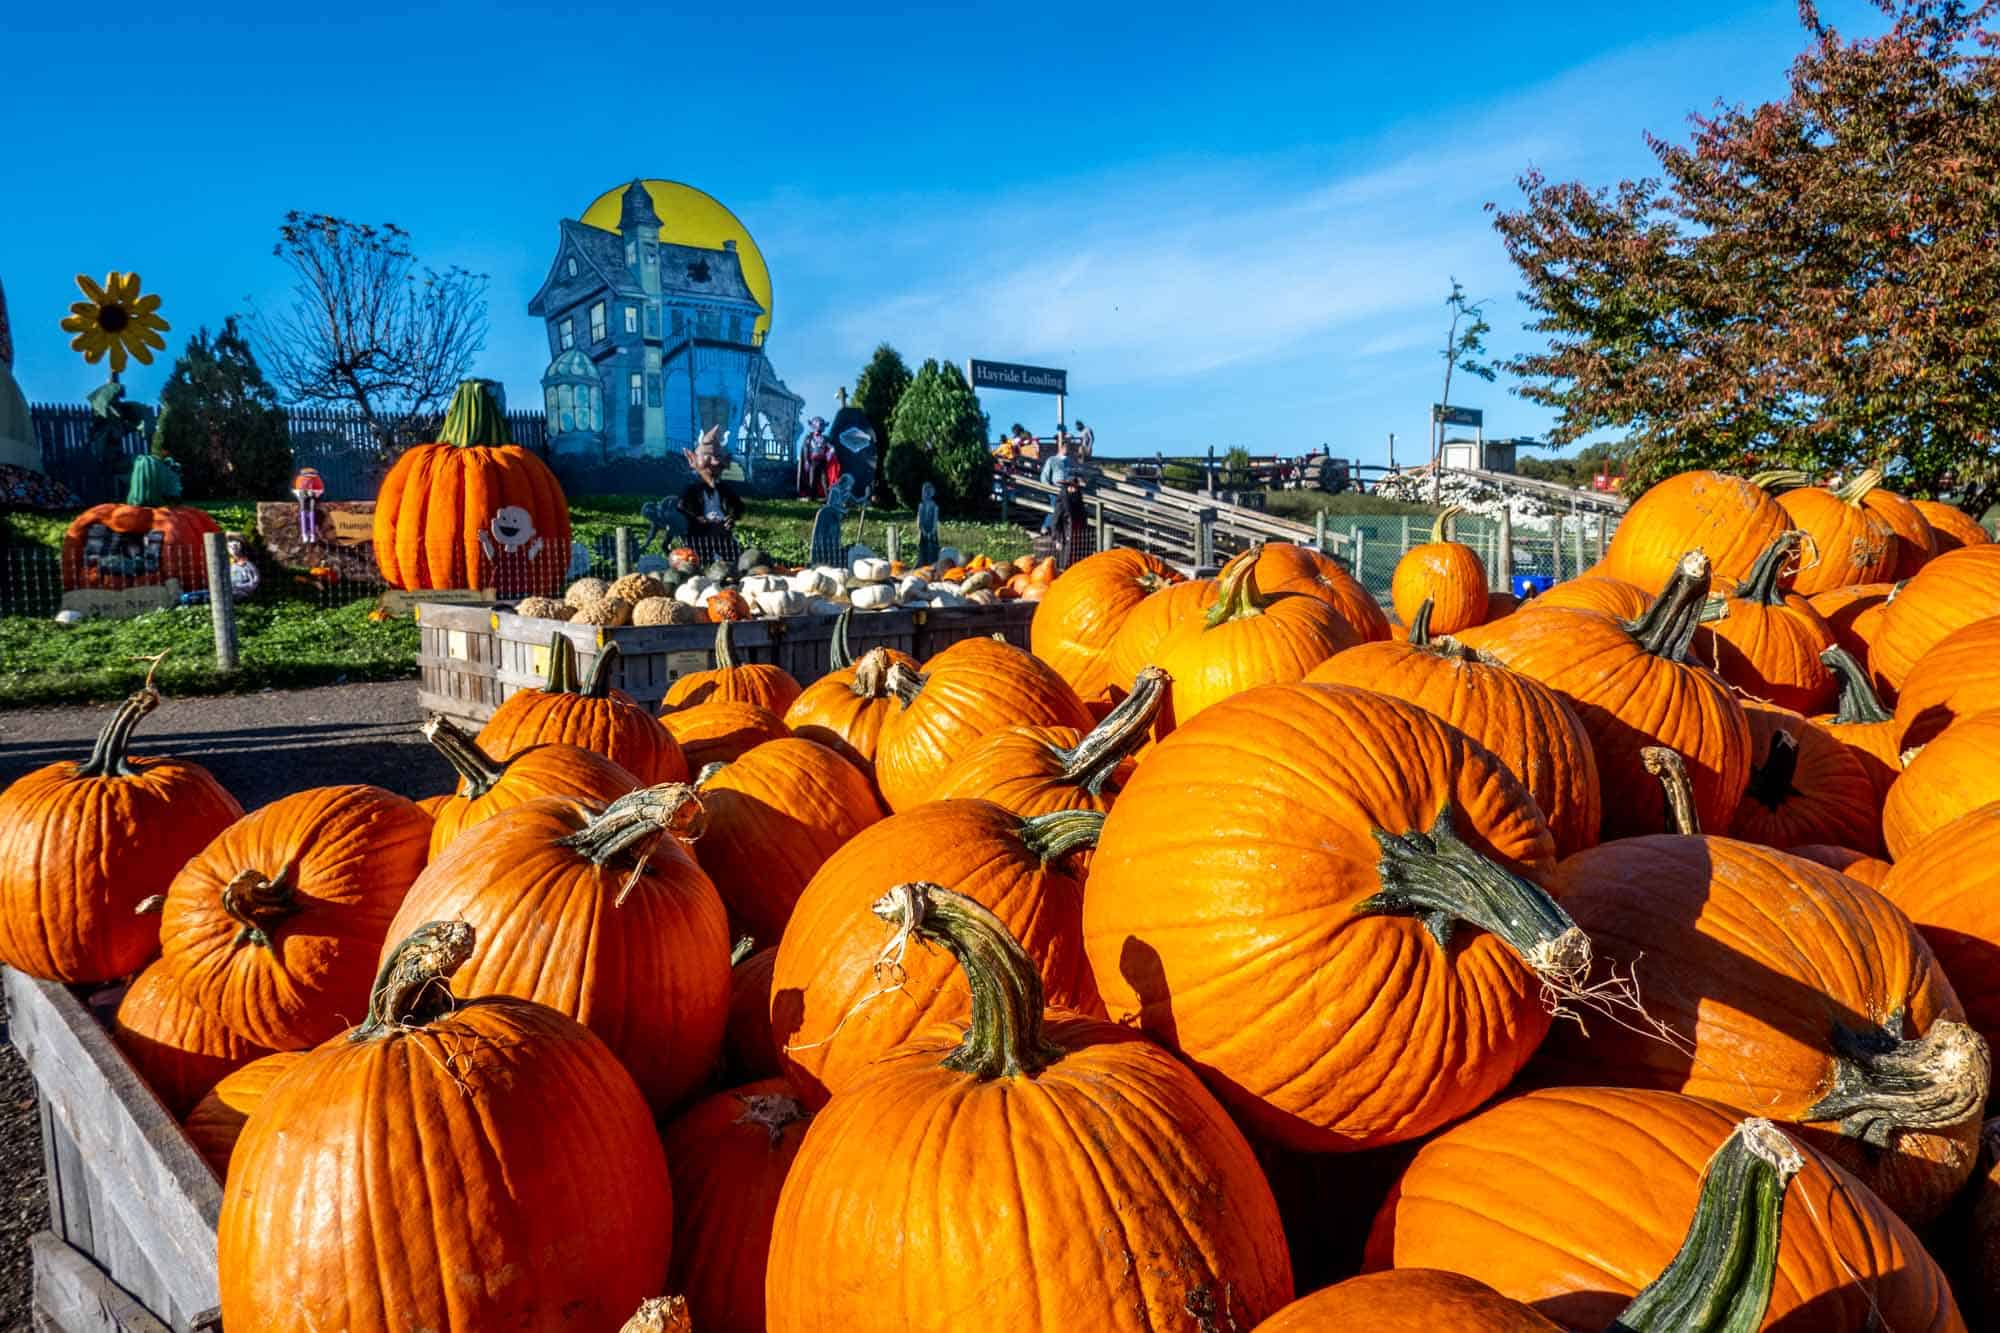 Large piles of pumpkins displayed for sale next to large inflatable pumpkin decorations and a haunted house cut-out